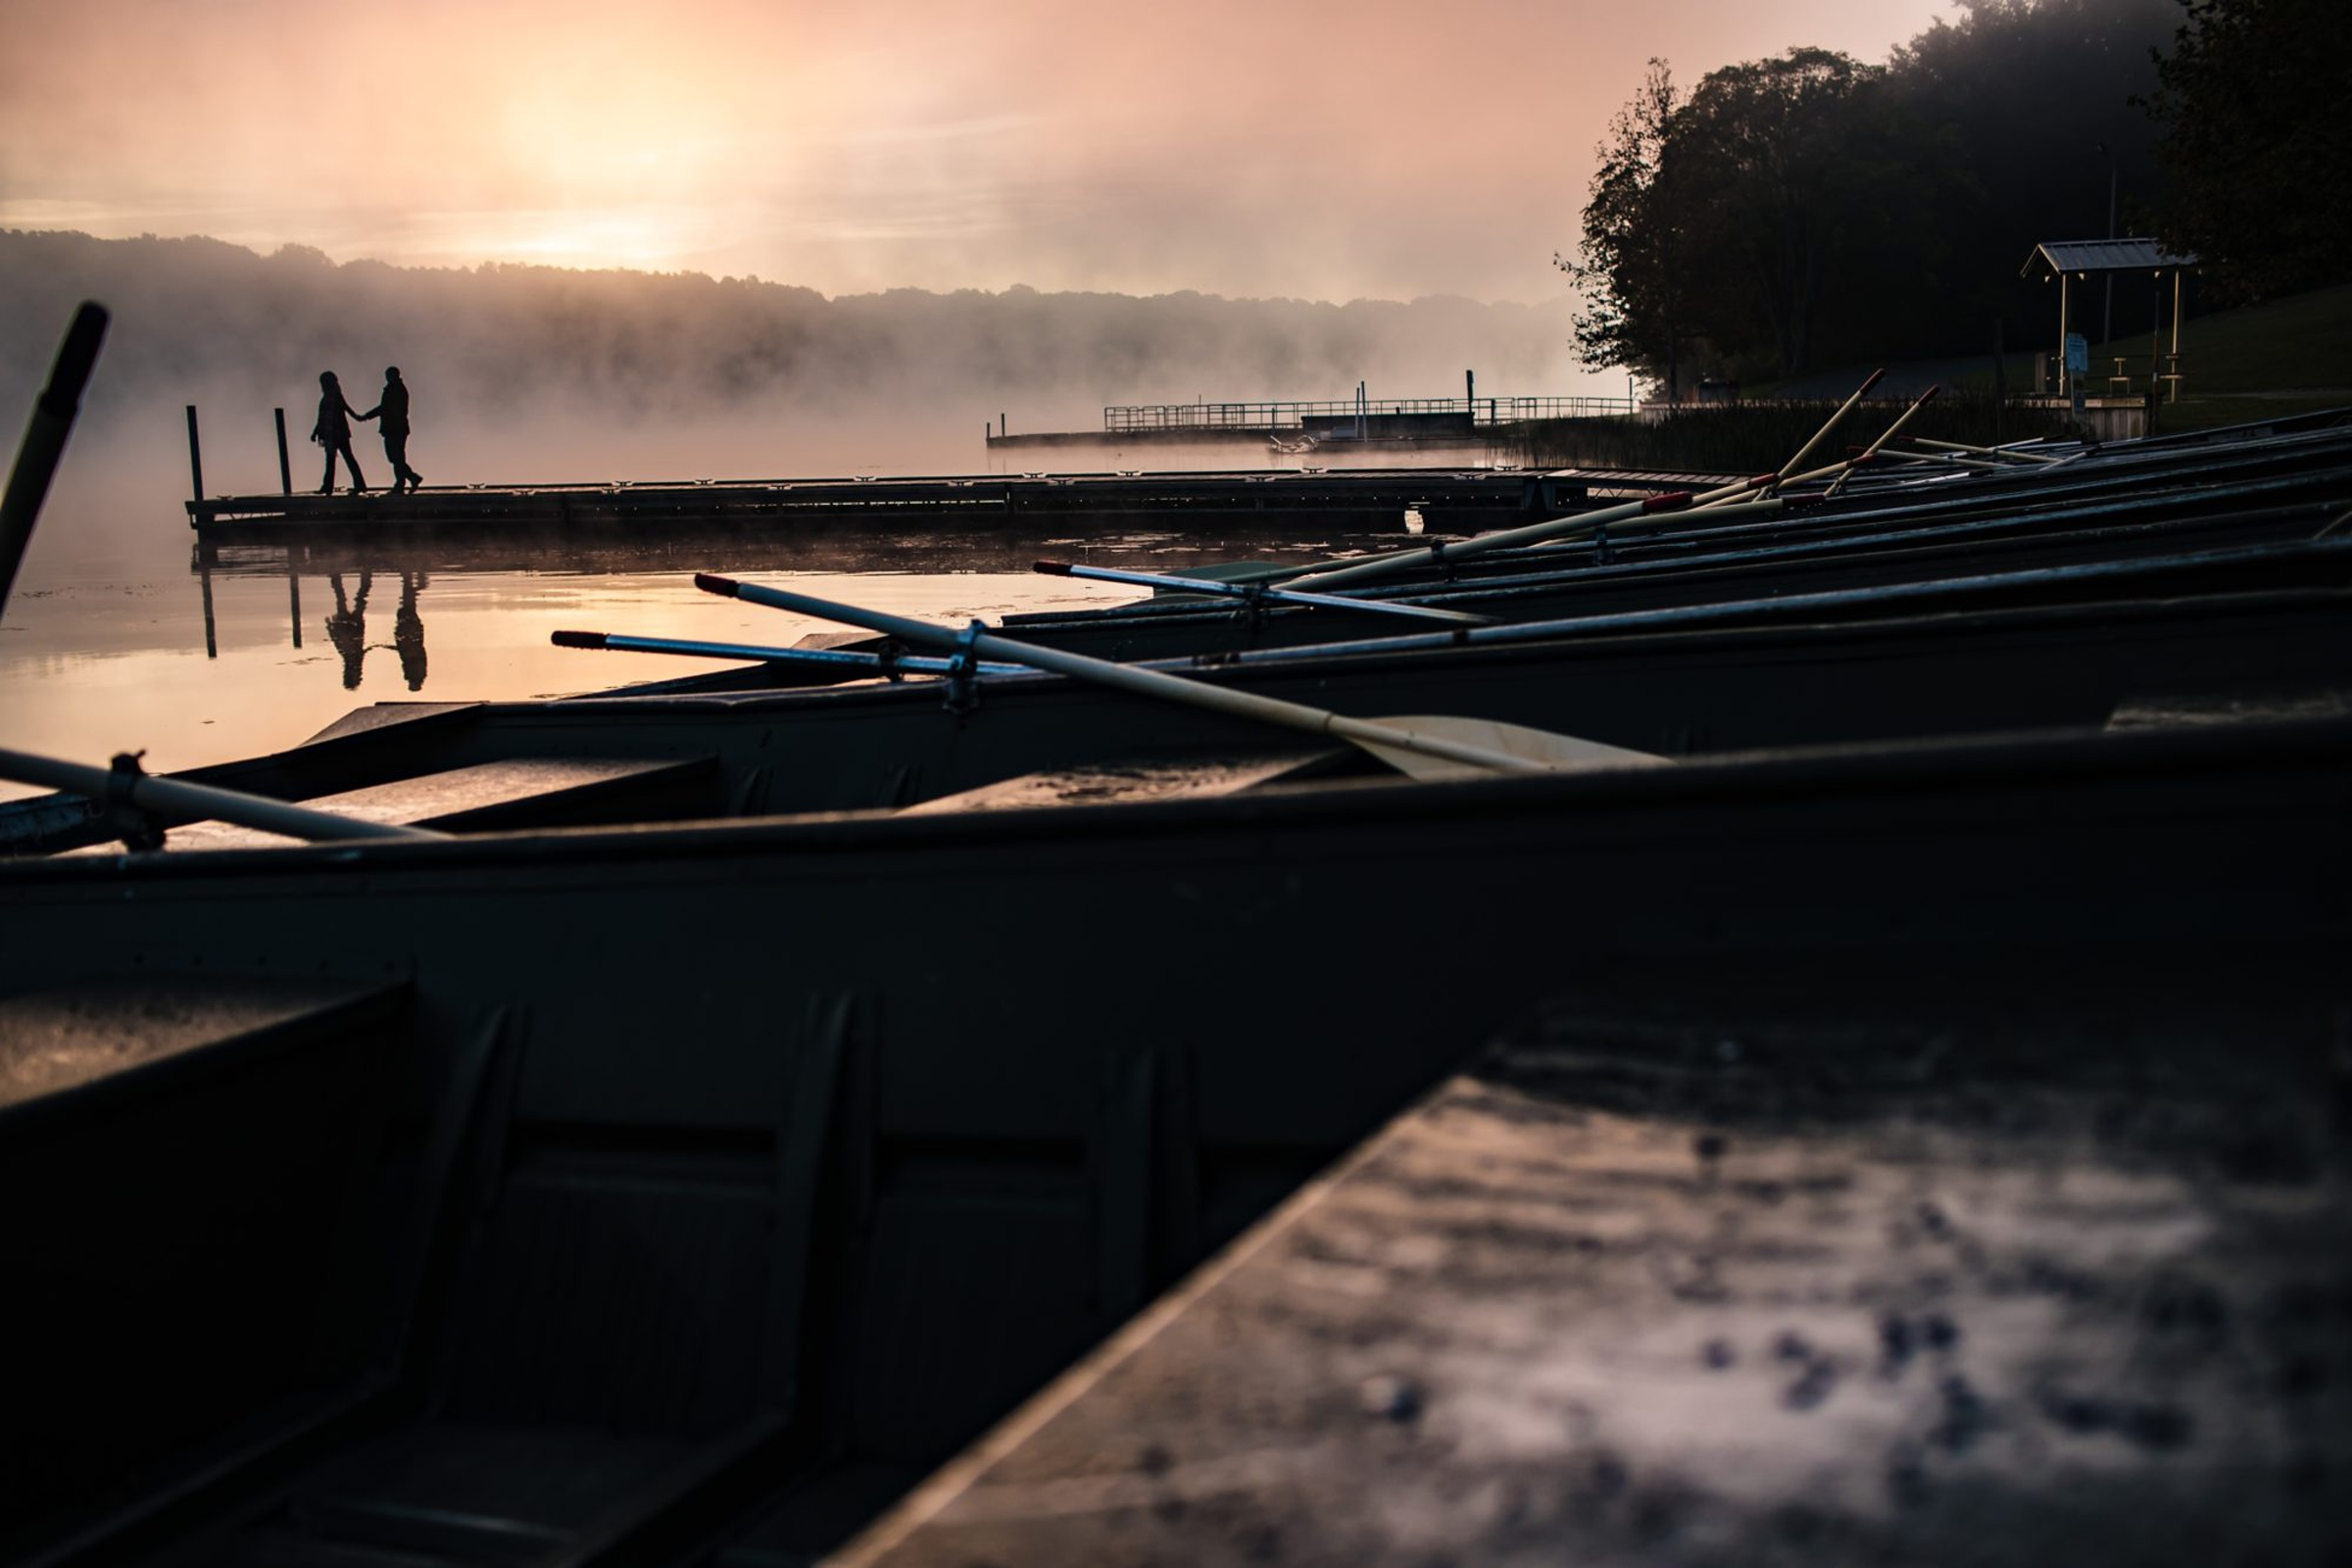 Silhouette of couple with canoes in foreground at misty sunset - photo by Photography by Brea